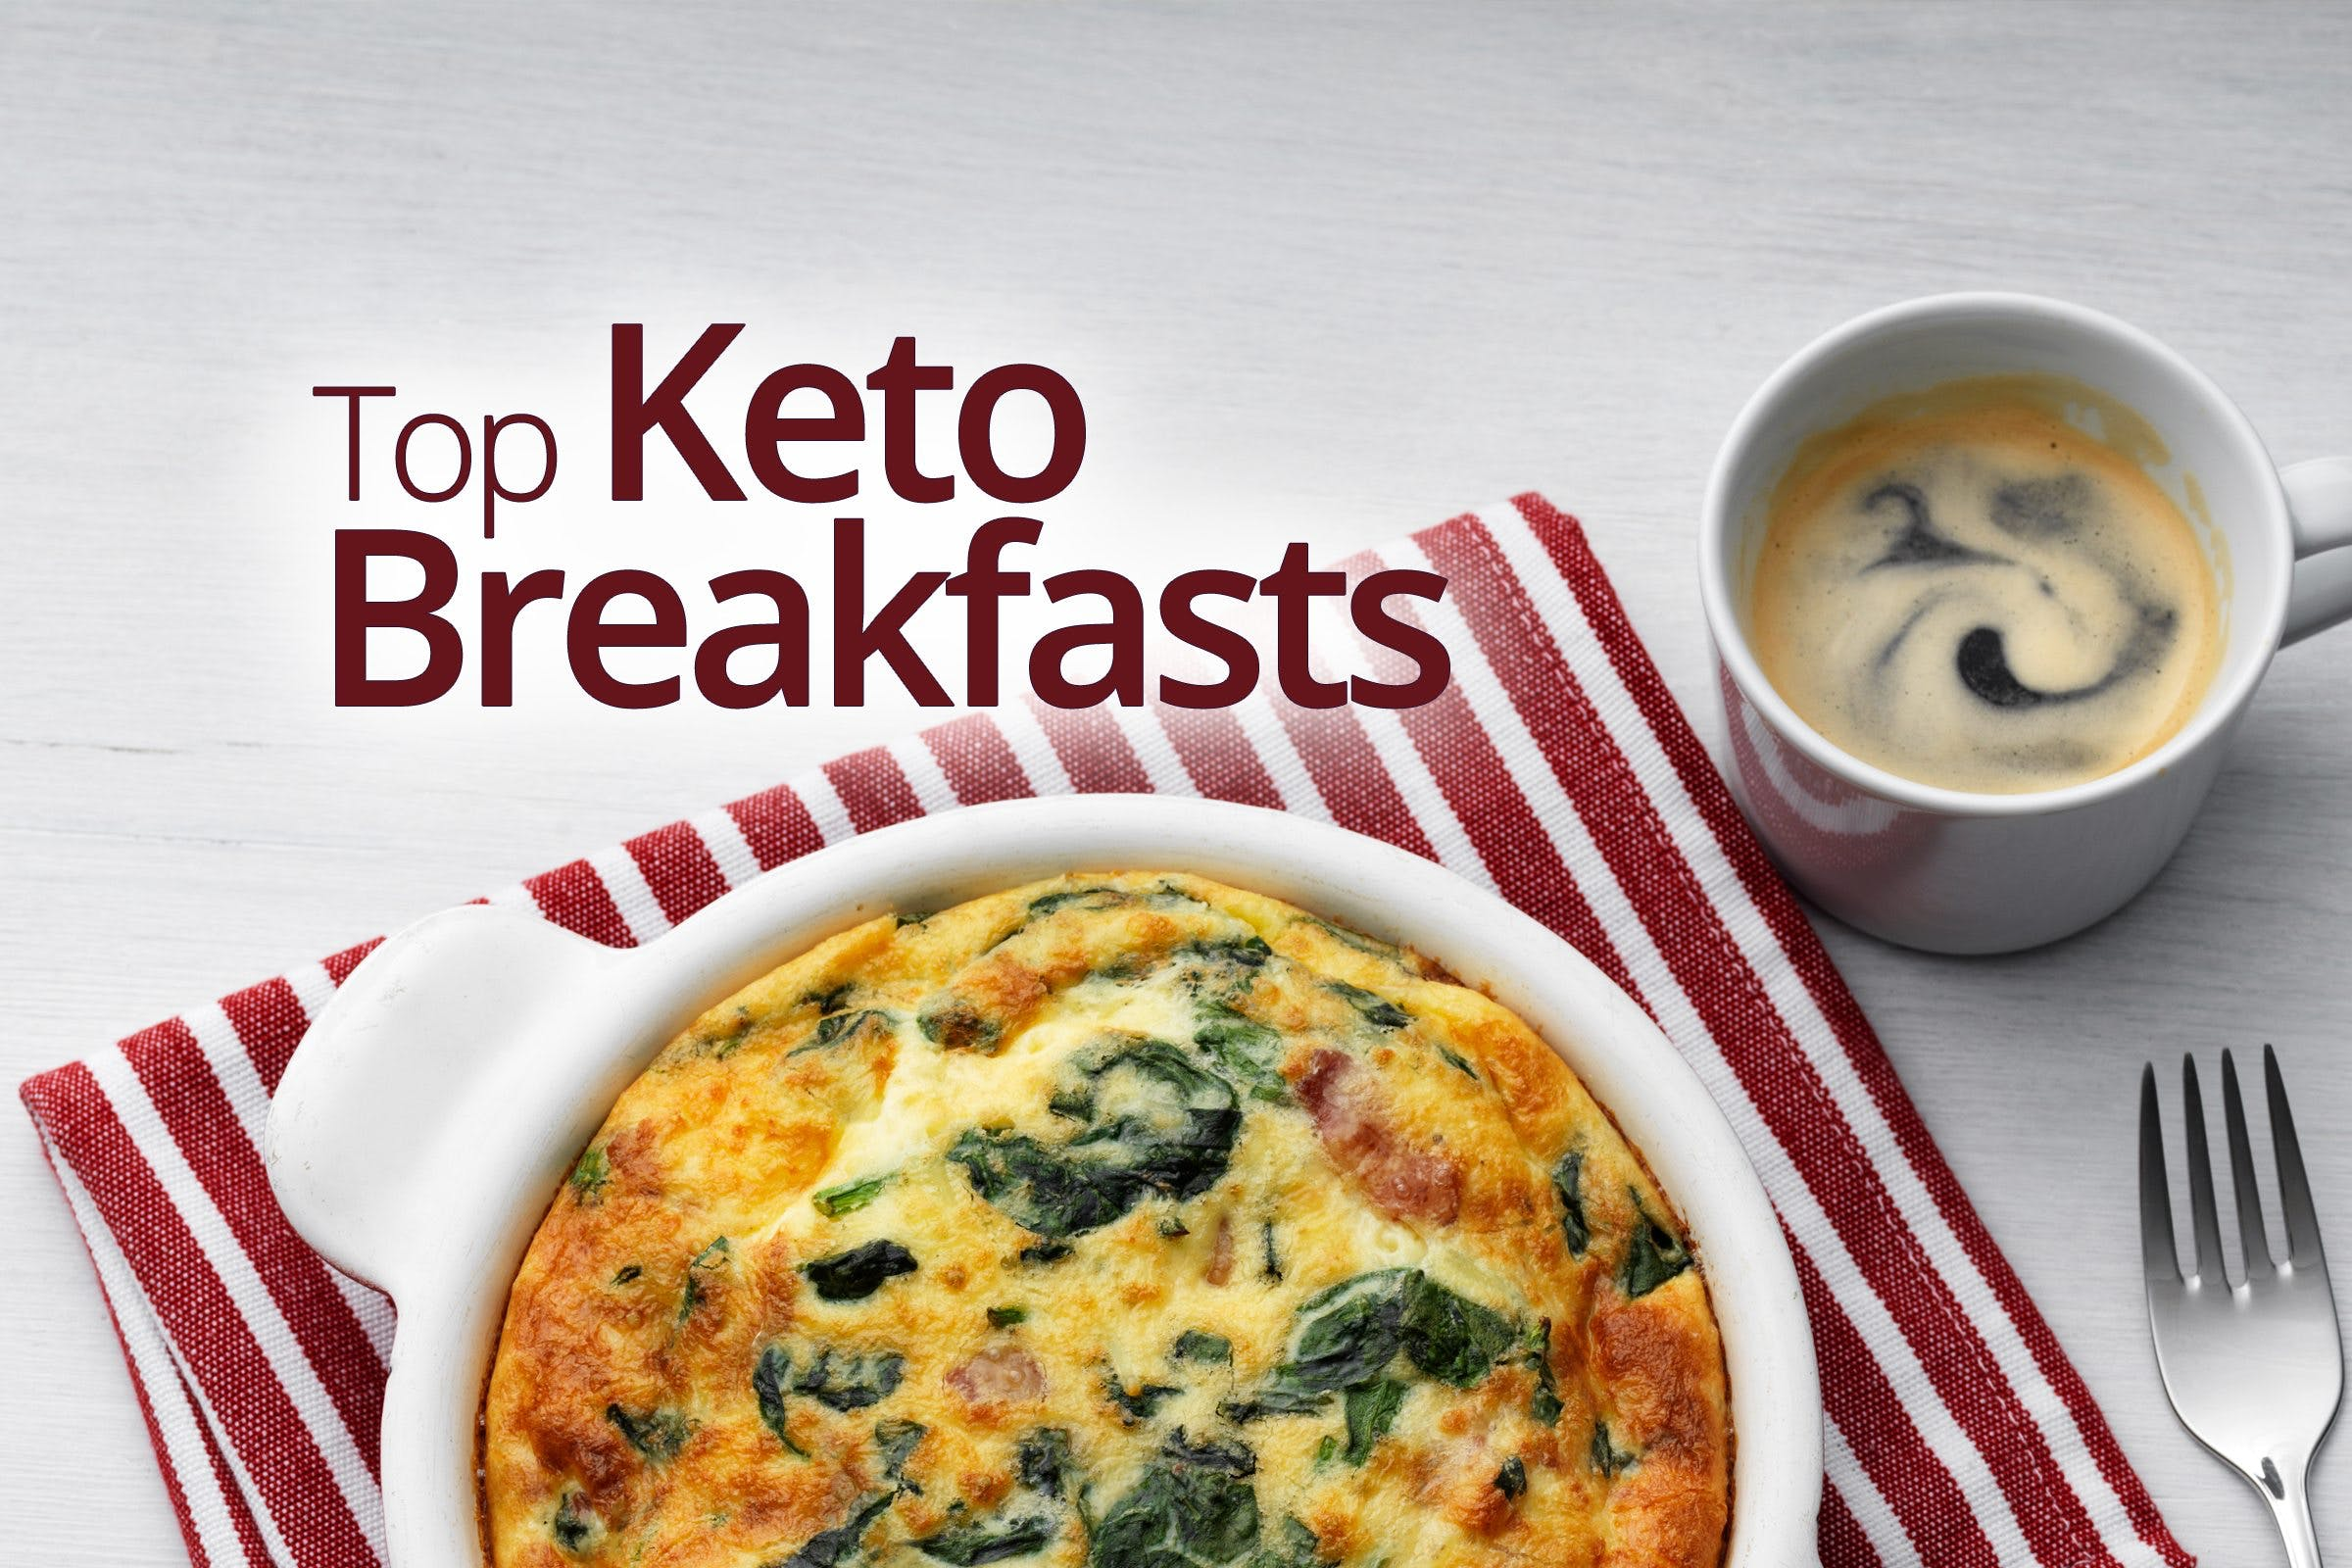 Top Keto Breakfasts